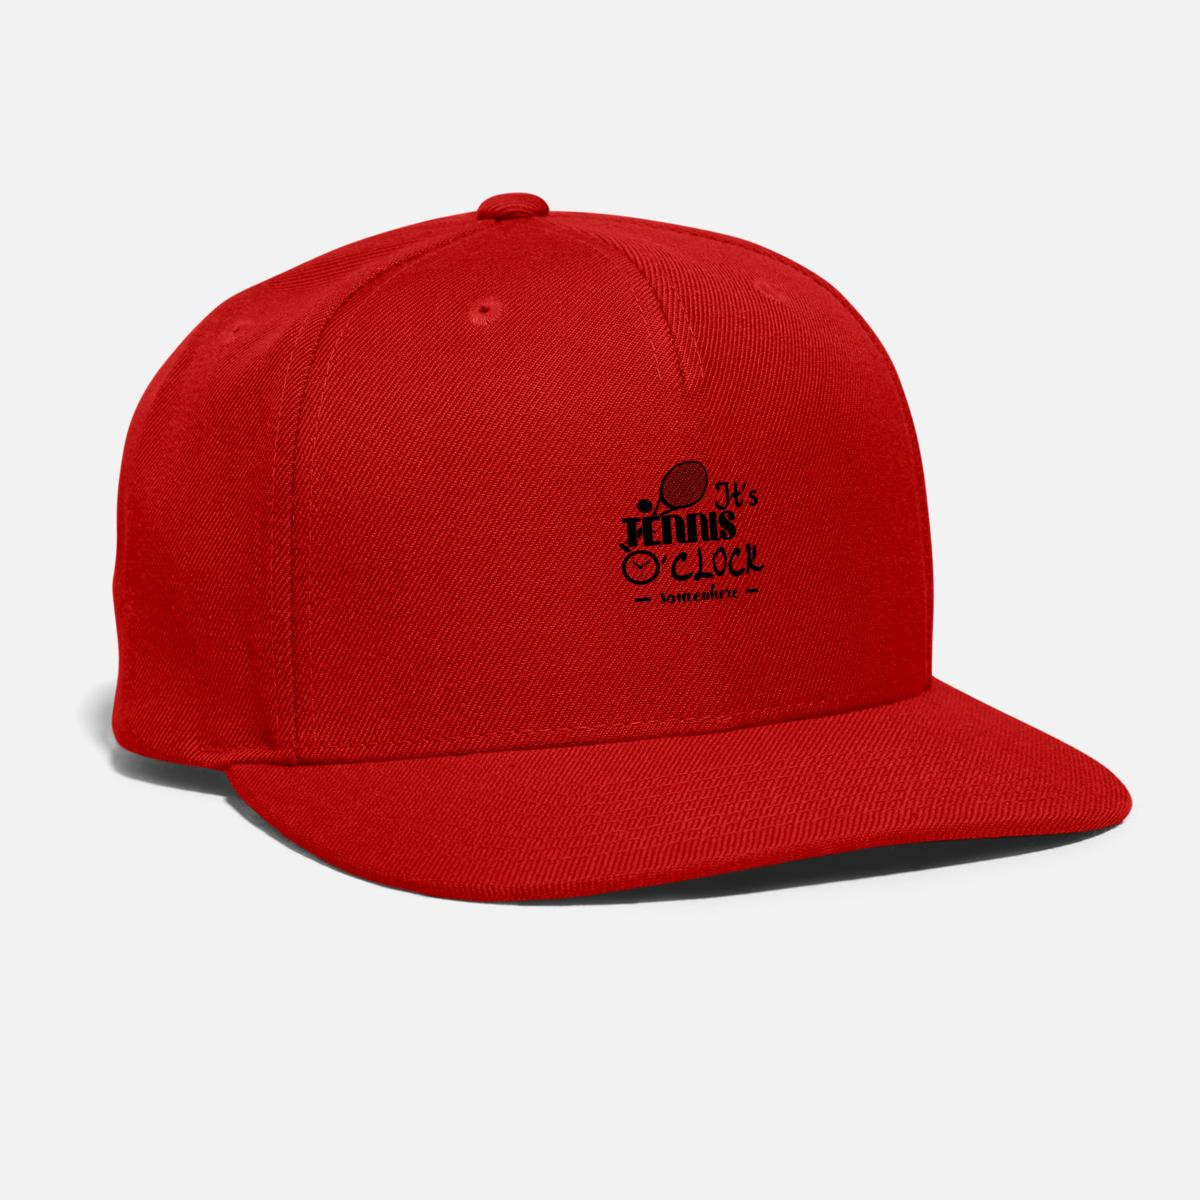 HAND PRINTED FUNNY BASEBALL CAP IS IT TABLE TENNIS O/'CLOCK YET